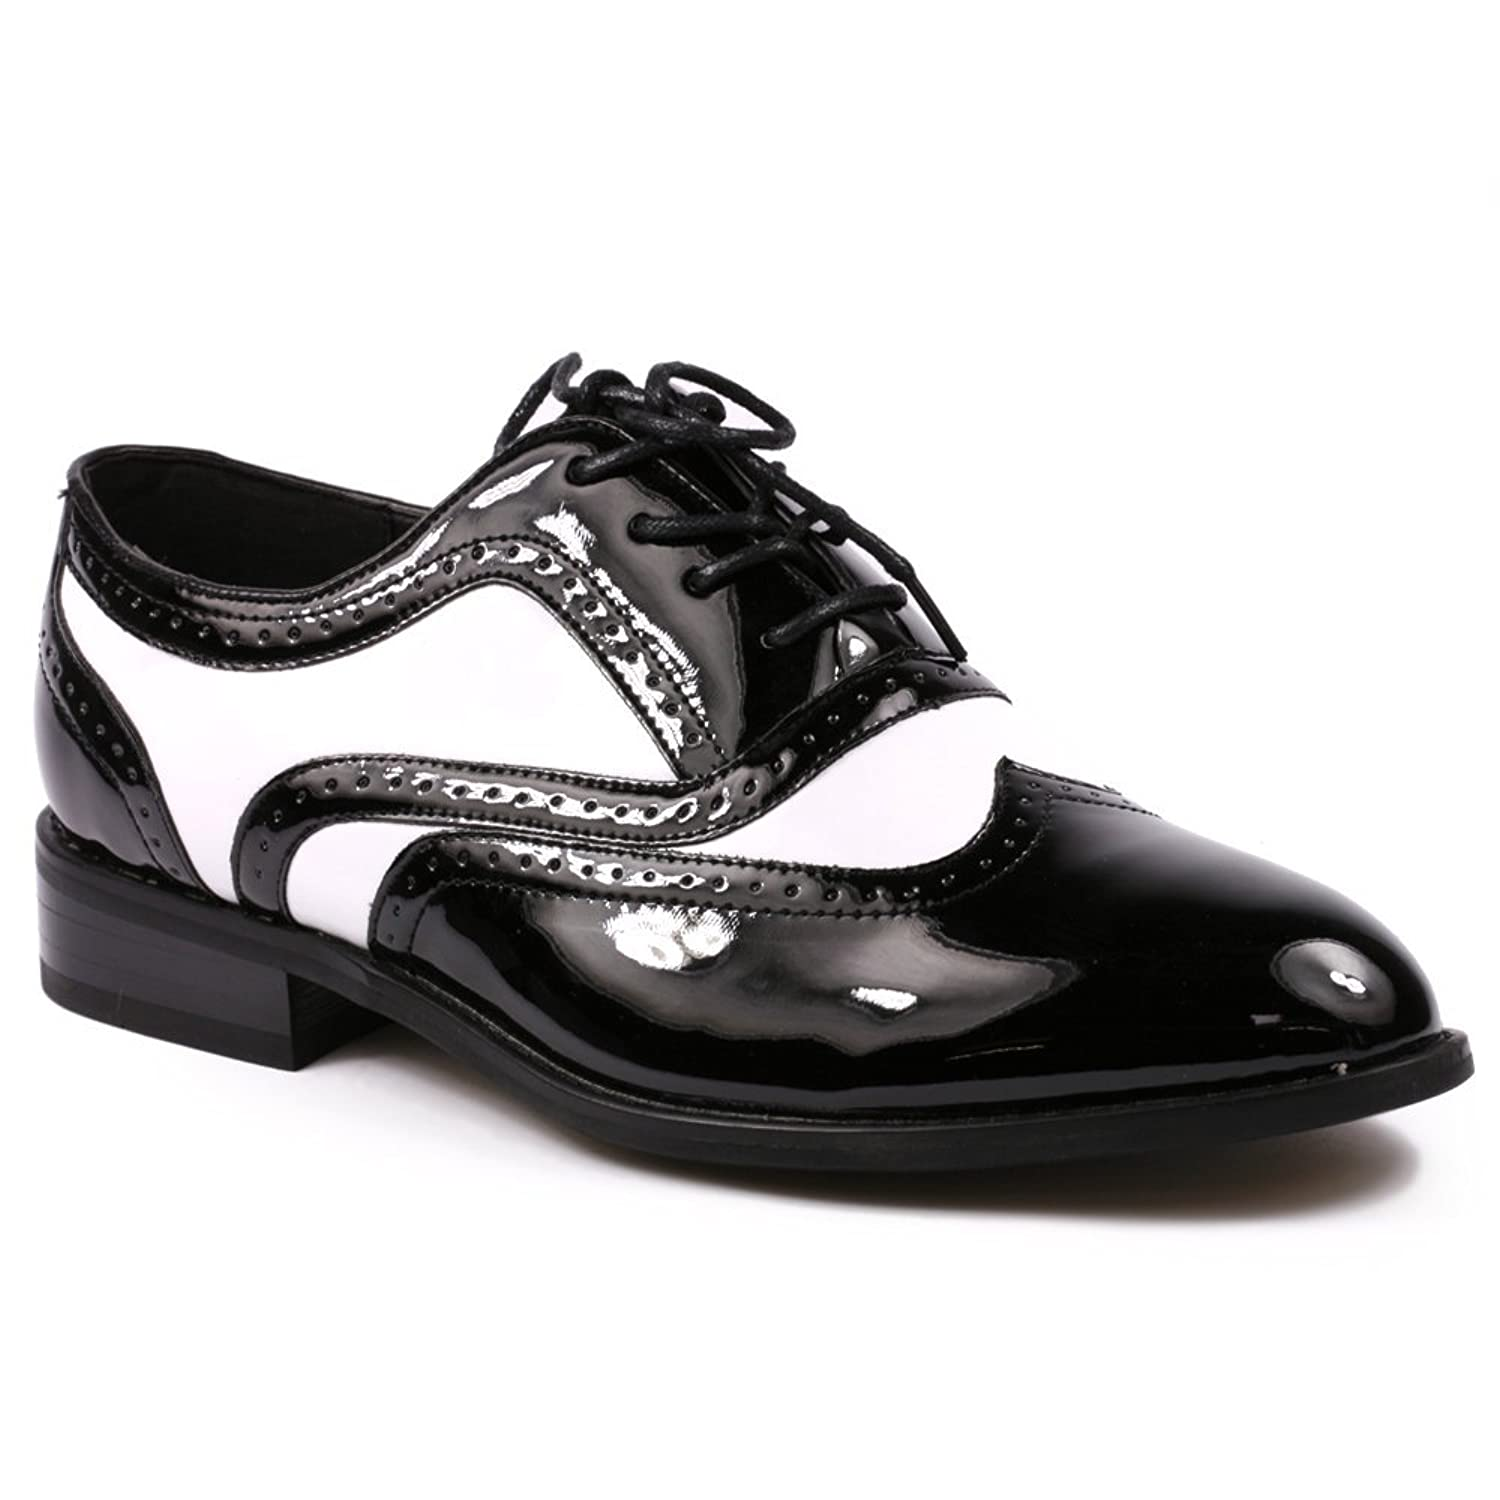 1950s Mens Shoes: Saddle Shoes, Boots, Greaser, Rockabilly Mens Black White Patent Tuxedo Perforated Wing Tip Lace Up Oxford Dress Shoes RUNS ONE FULL SIZE BIG $38.99 AT vintagedancer.com